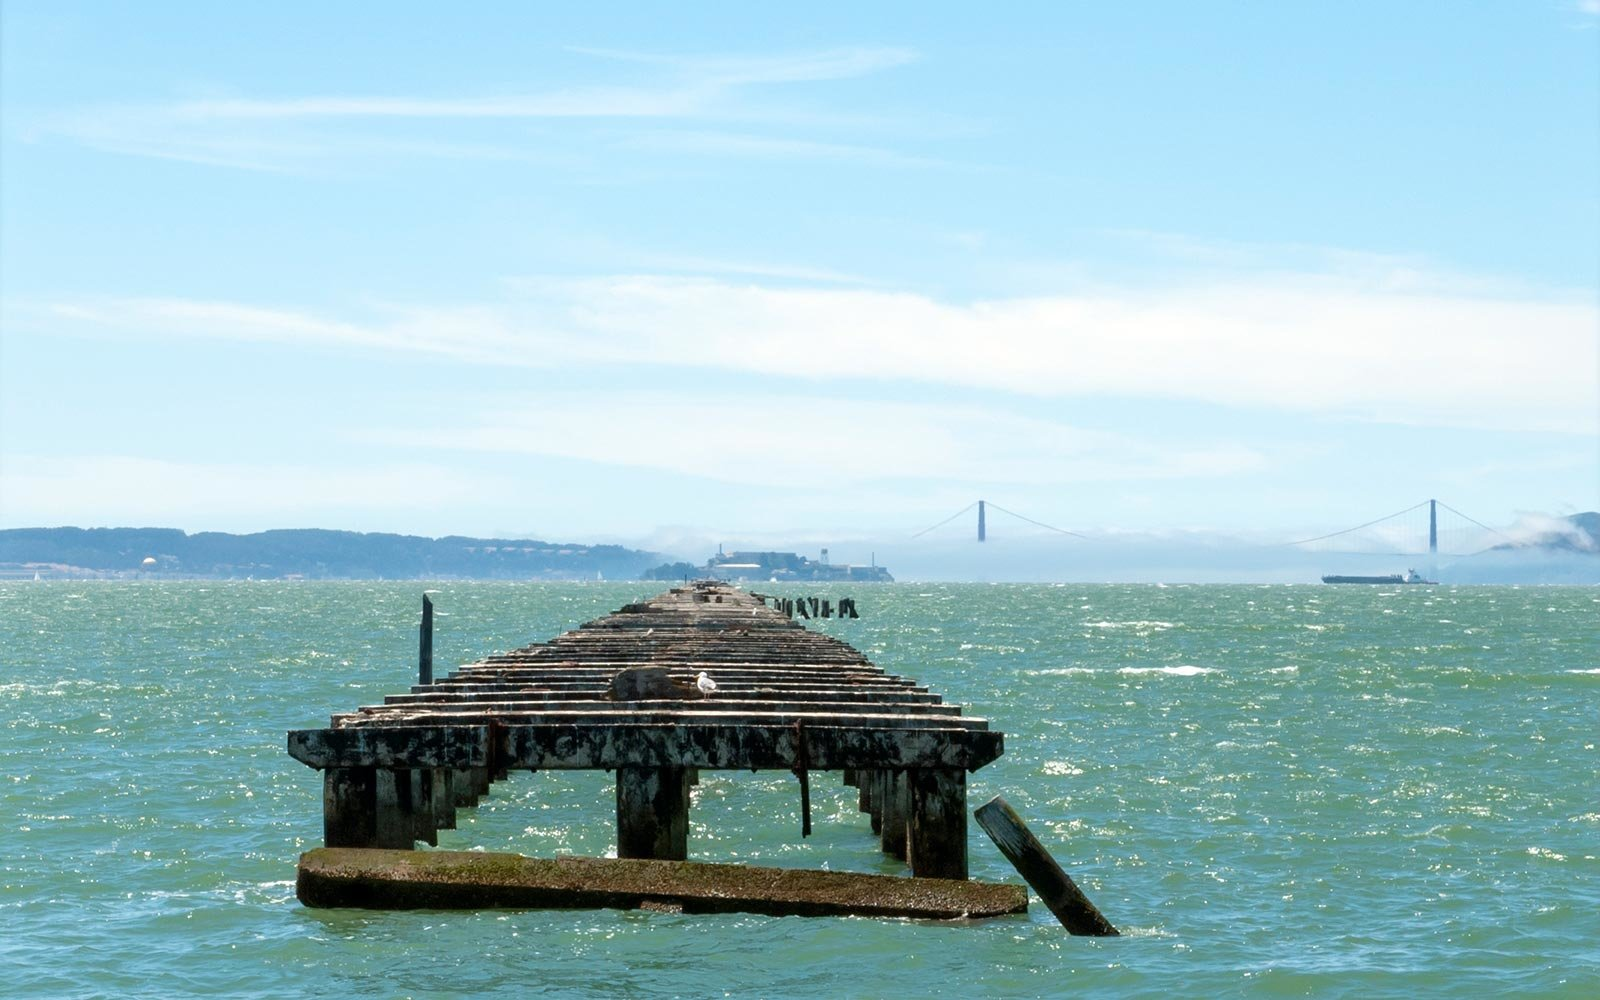 San Francisco to Implode Two Piers this Month